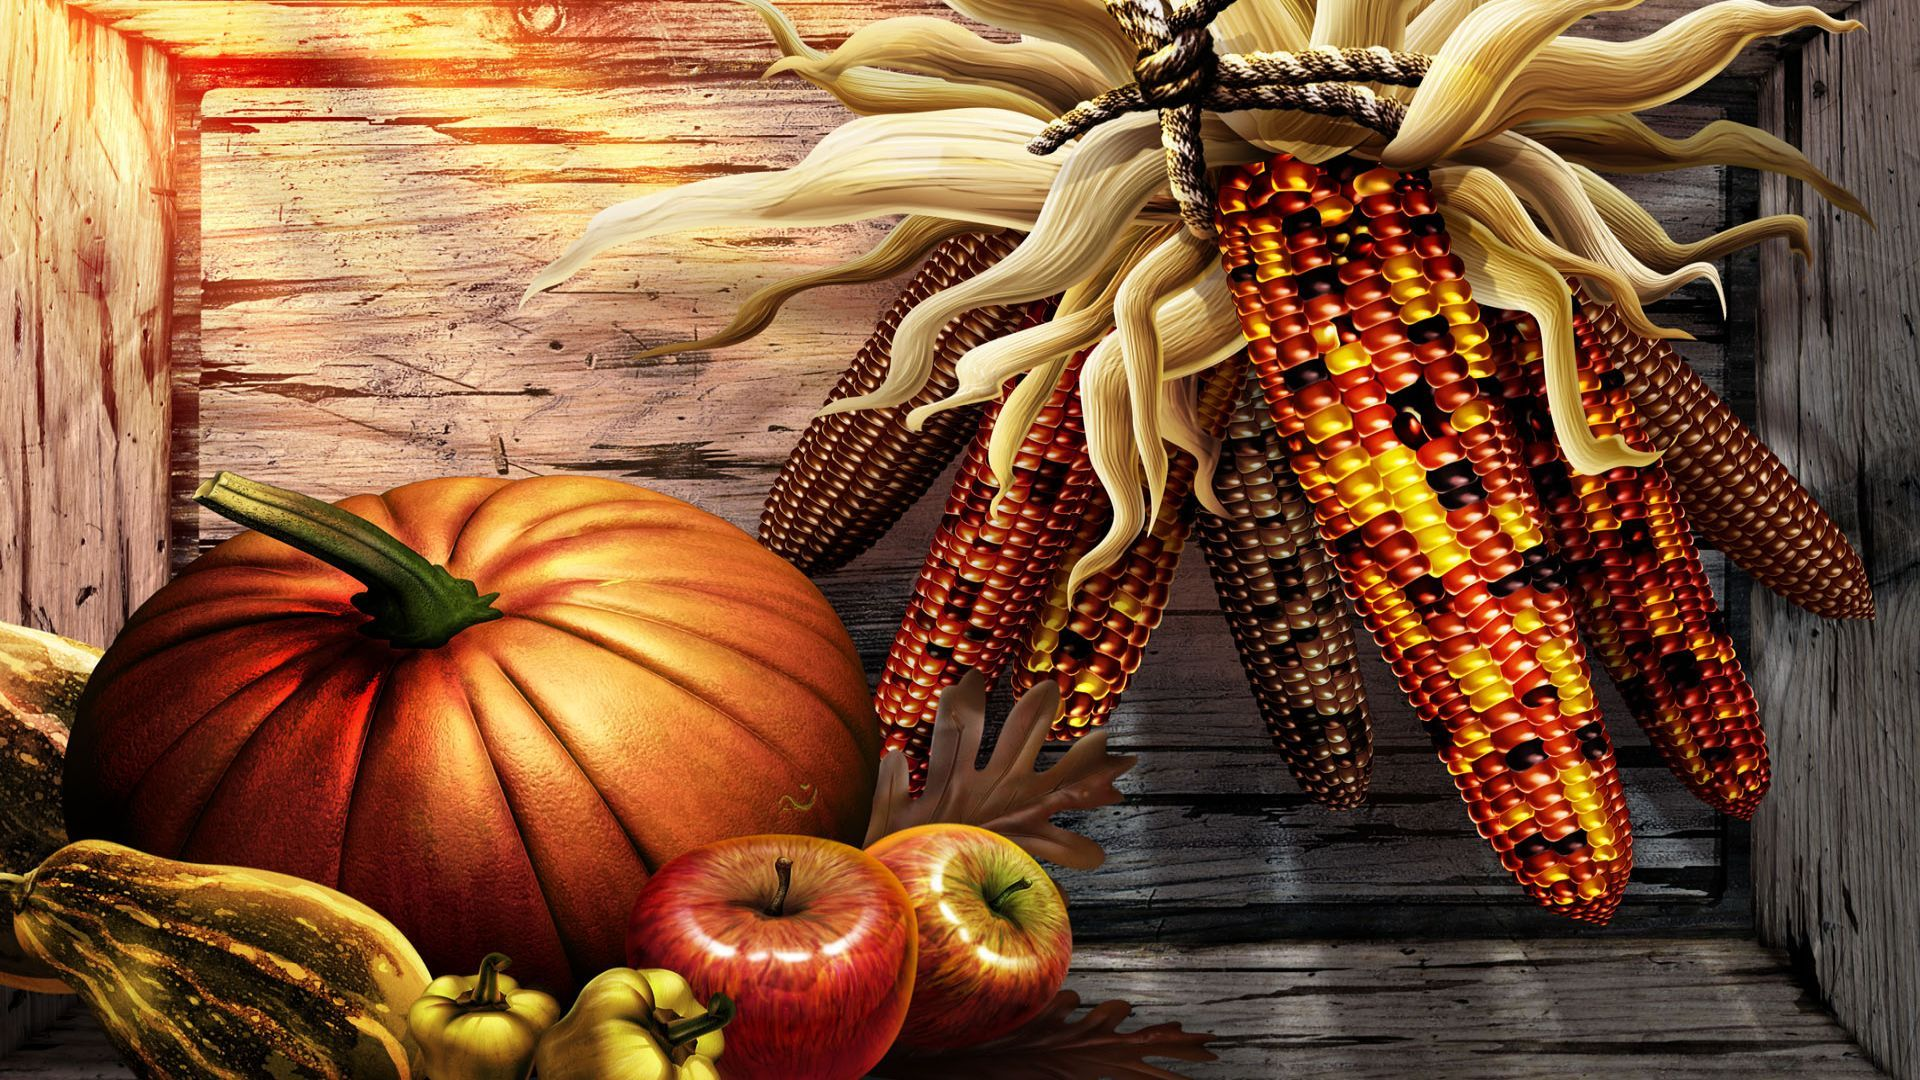 Pictures Of Harvesting Harvest Thanksgiving Cartoons Wallpapers Wallpaper Seasons Thanksgiving Background Thanksgiving Facebook Covers Thanksgiving Pictures